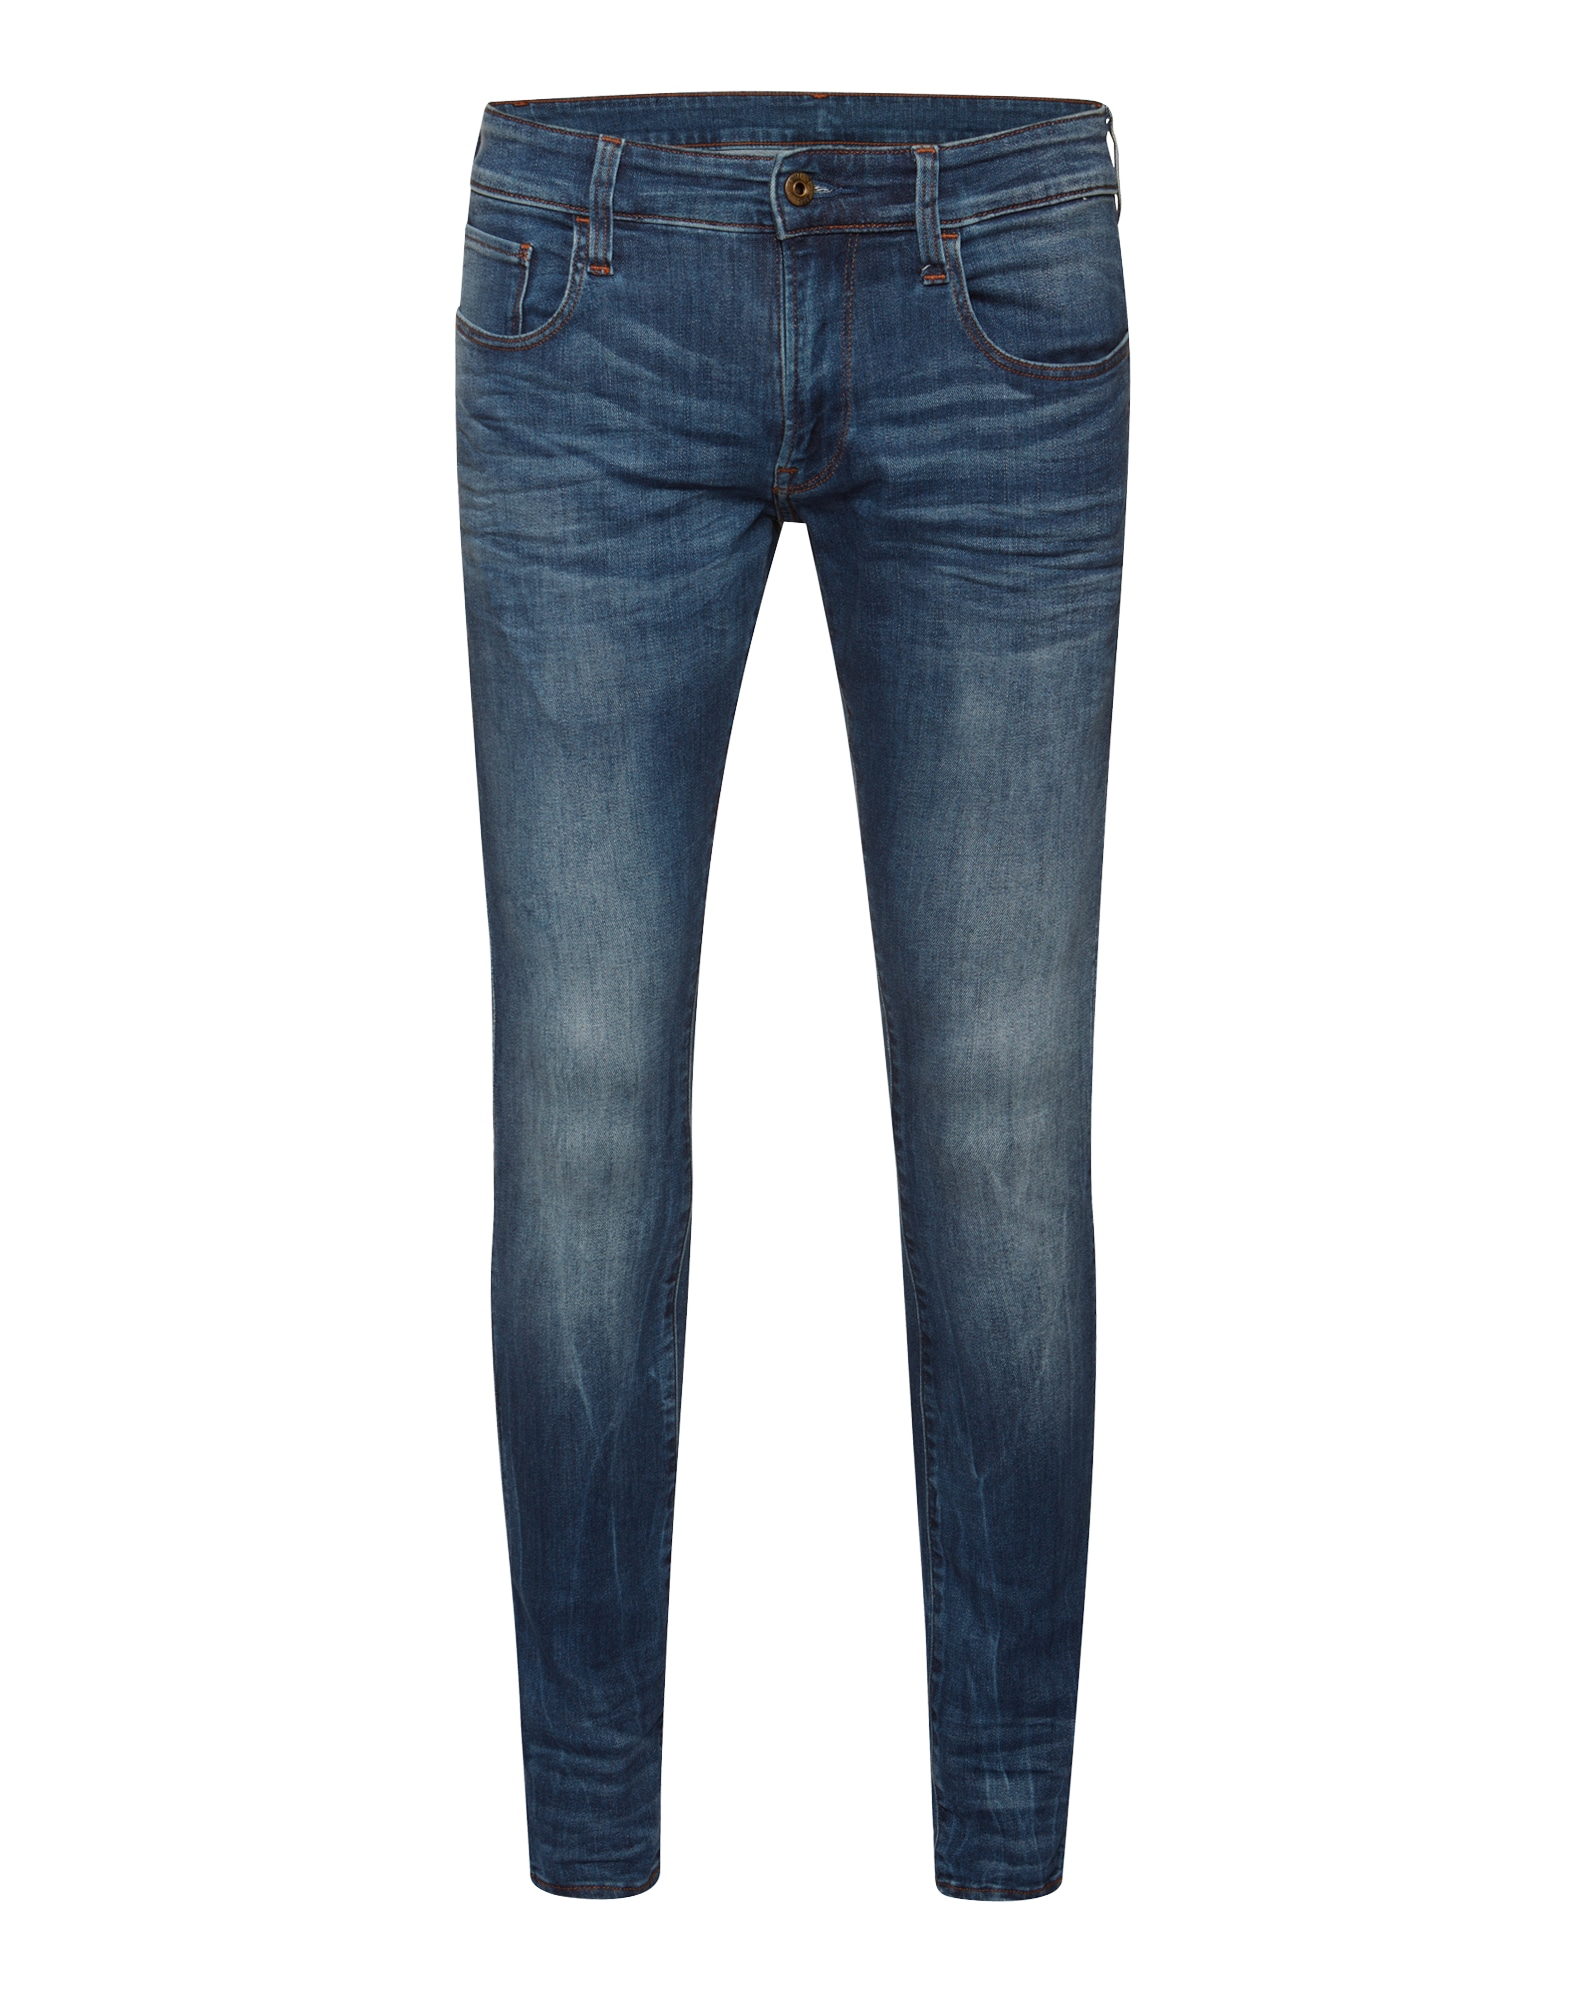 G-STAR RAW Heren Jeans 3301 Deconstructed Super Slim blue denim